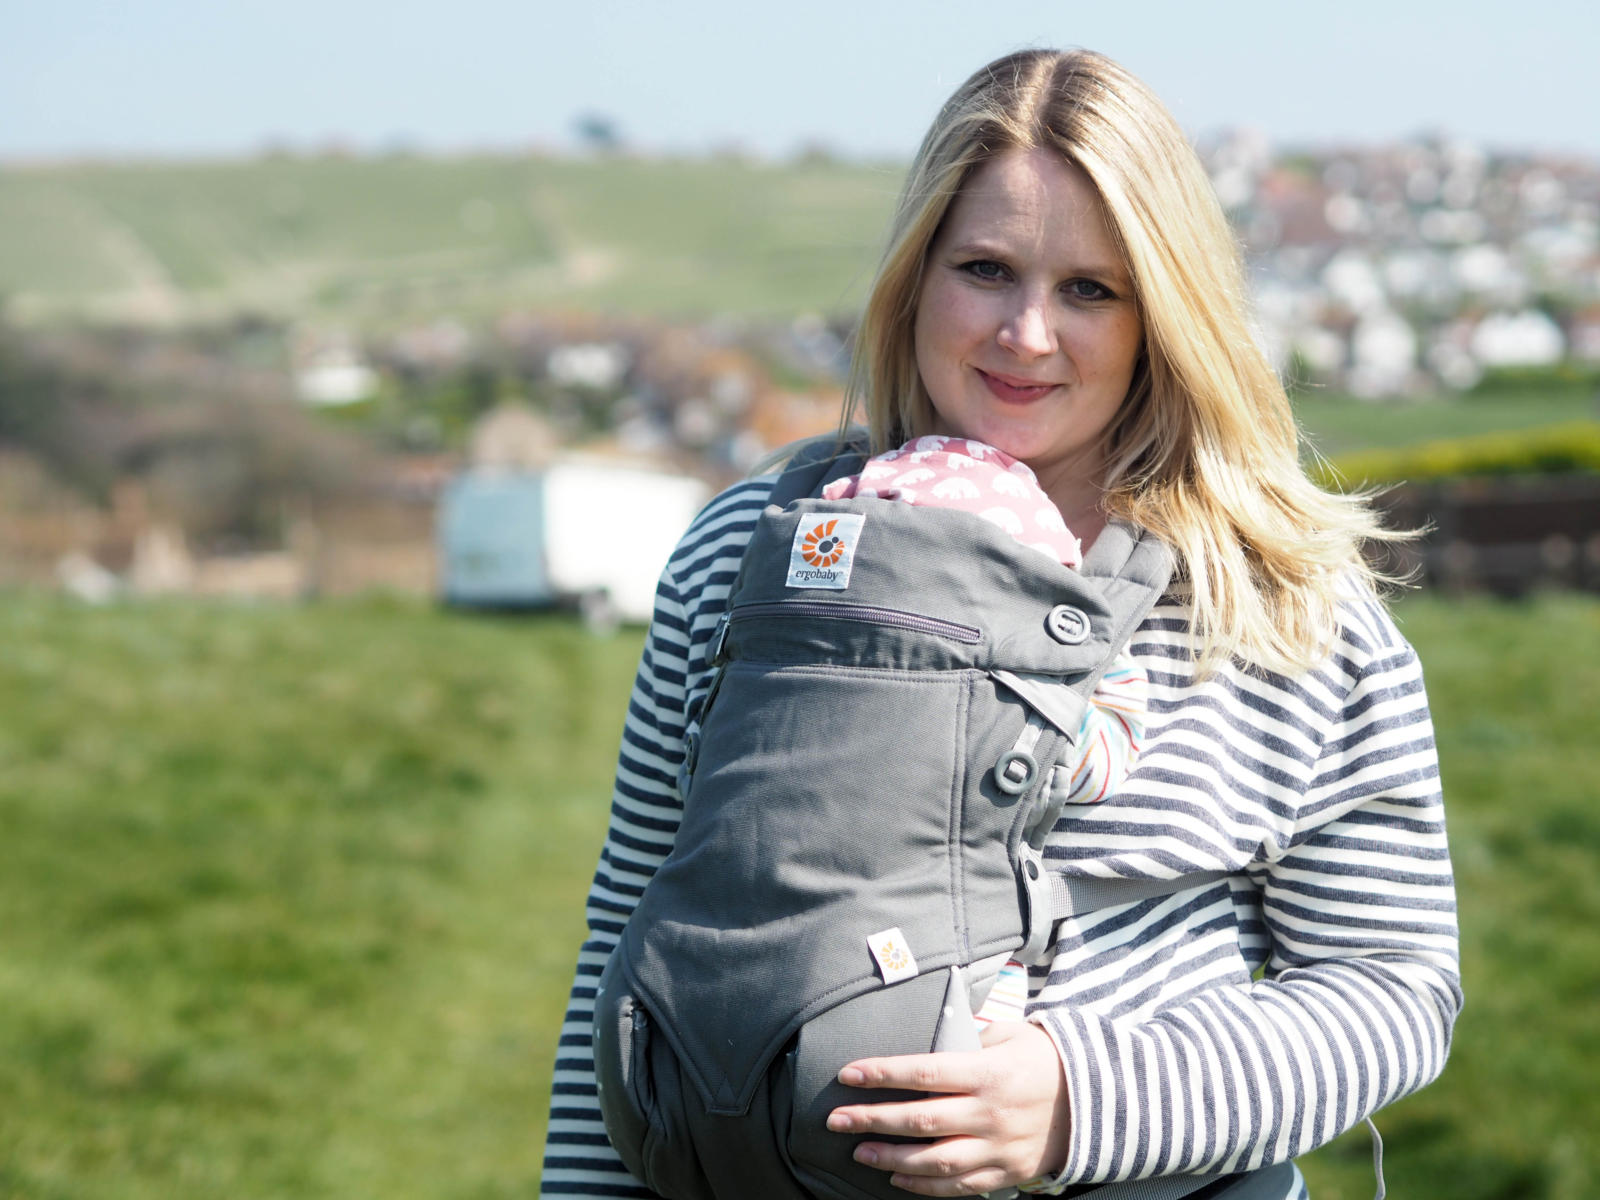 Getting out and about with a new baby: My Ergobaby 360 review